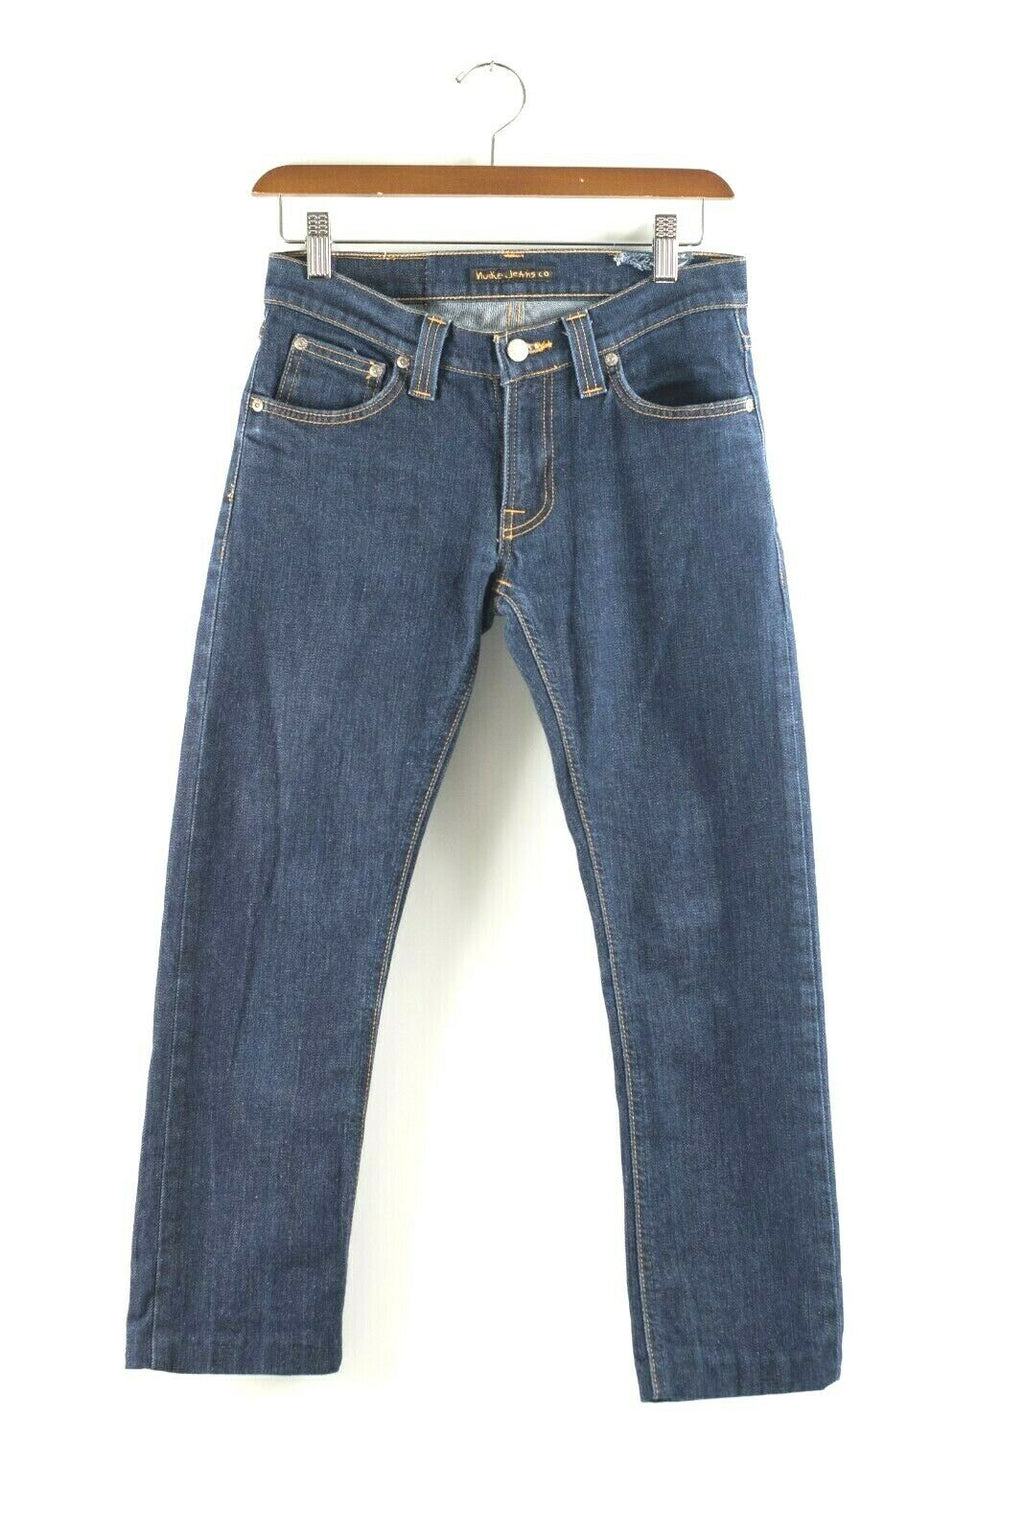 Nudie Womens Size 28 X 34 Jeans Tight Long John Skinny Leg in Dirty Stretch Blue